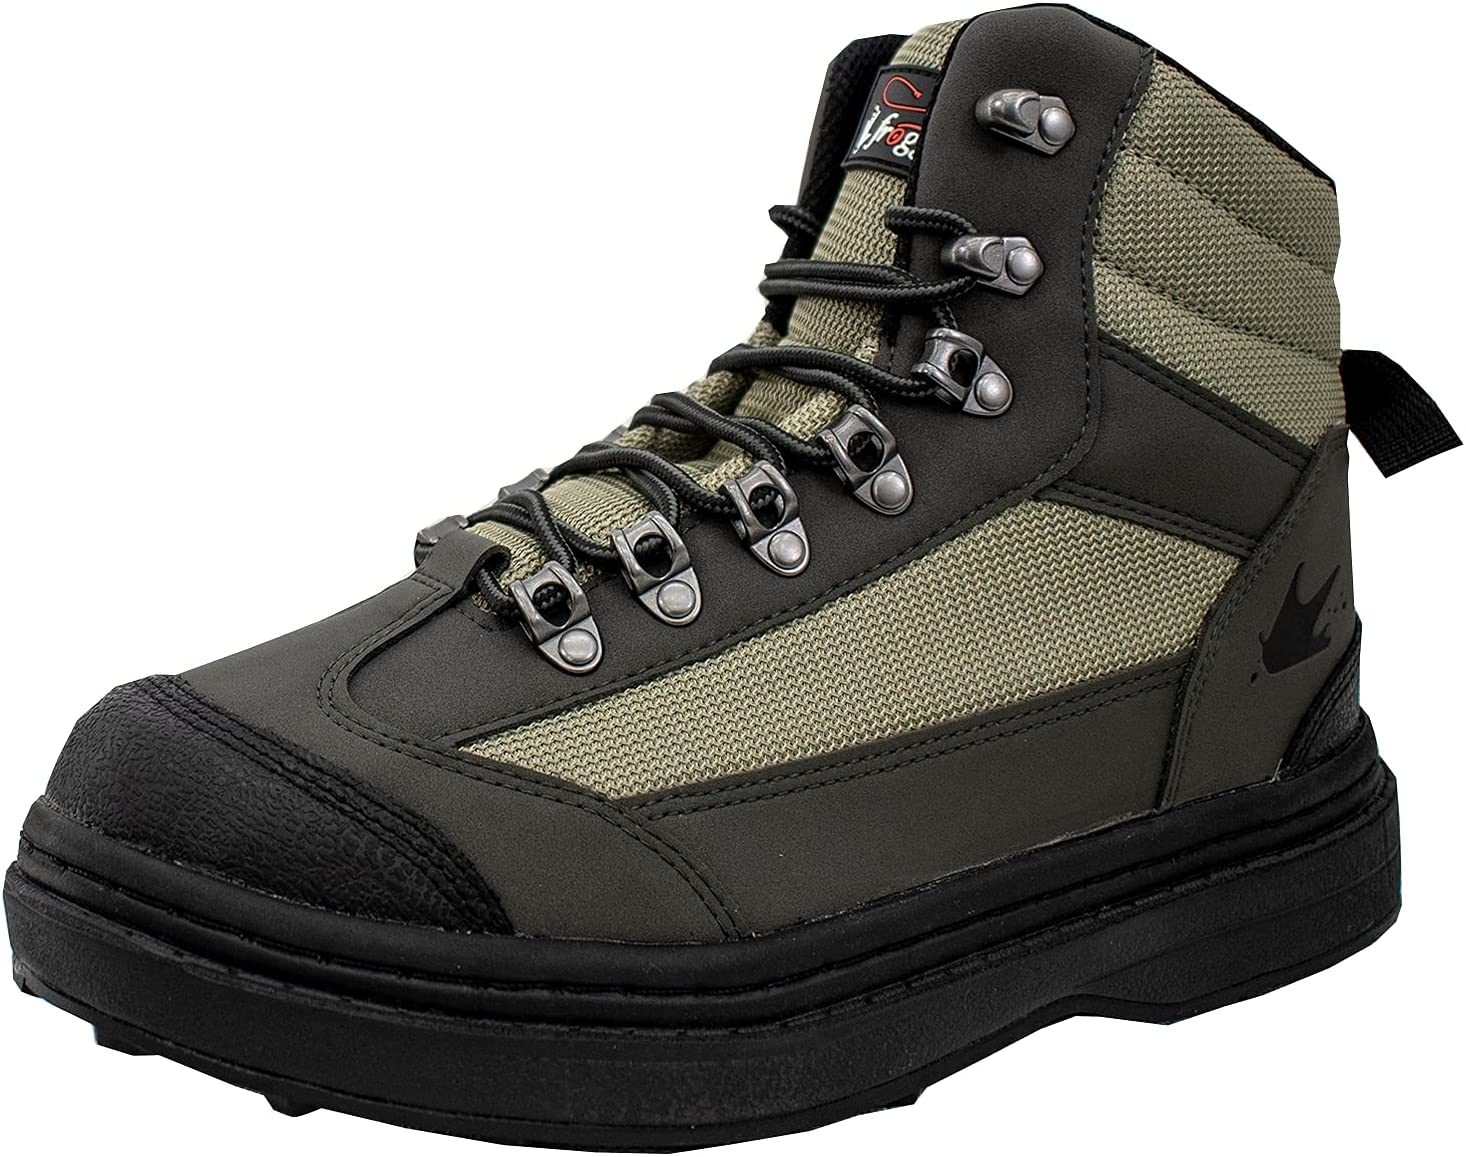 Frogg Toggs Fly Fishing Boots